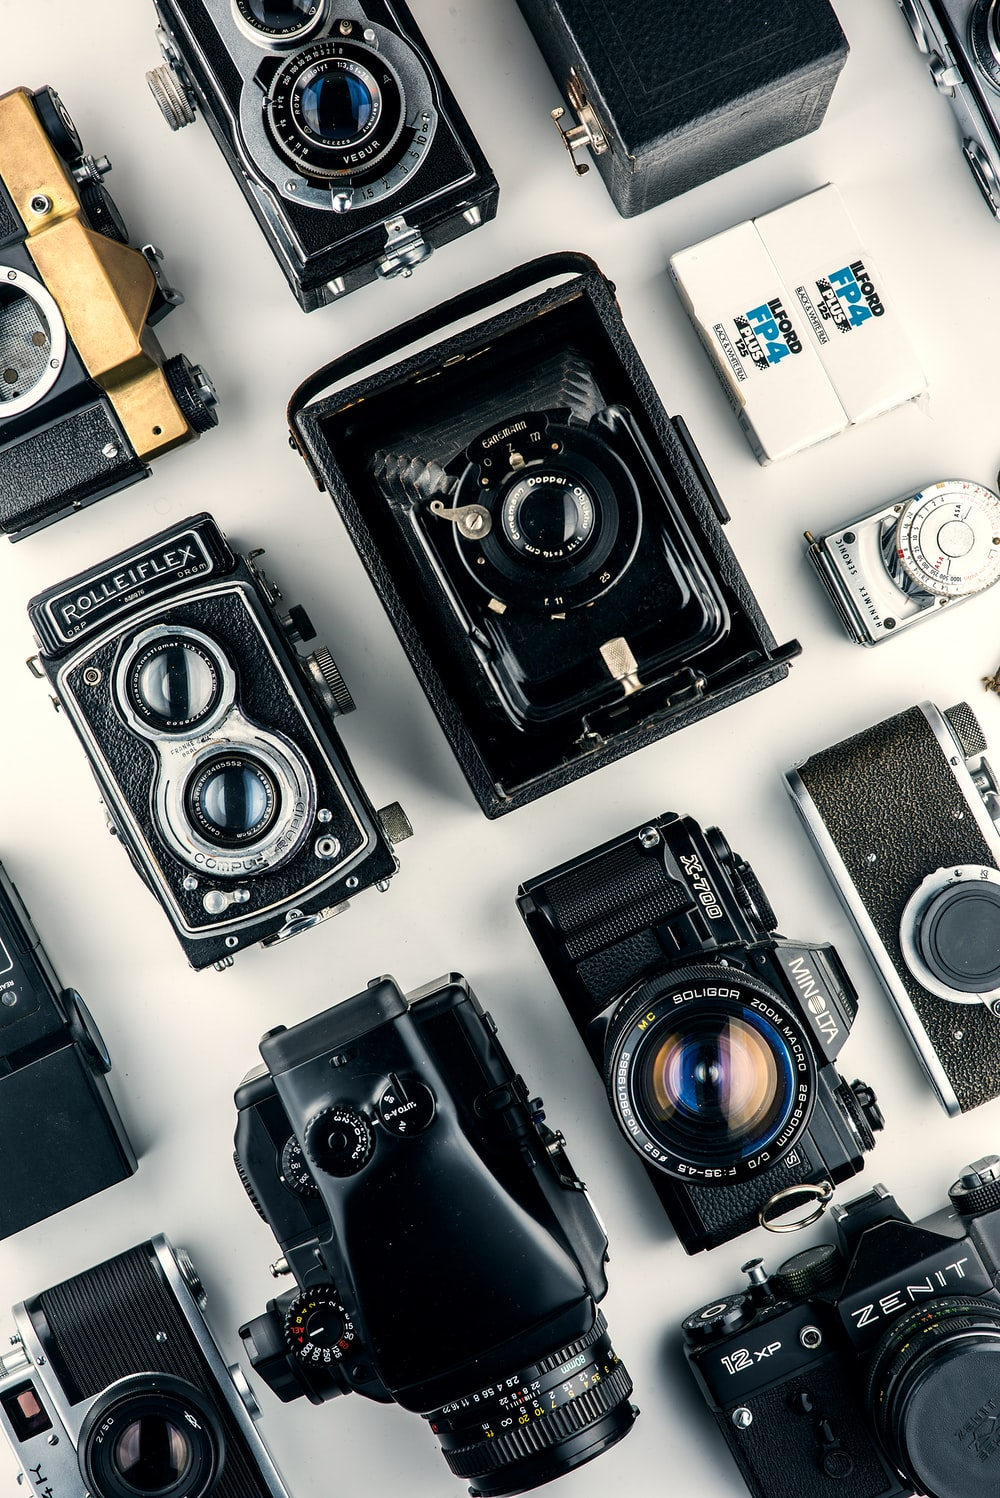 black cameras on white surface